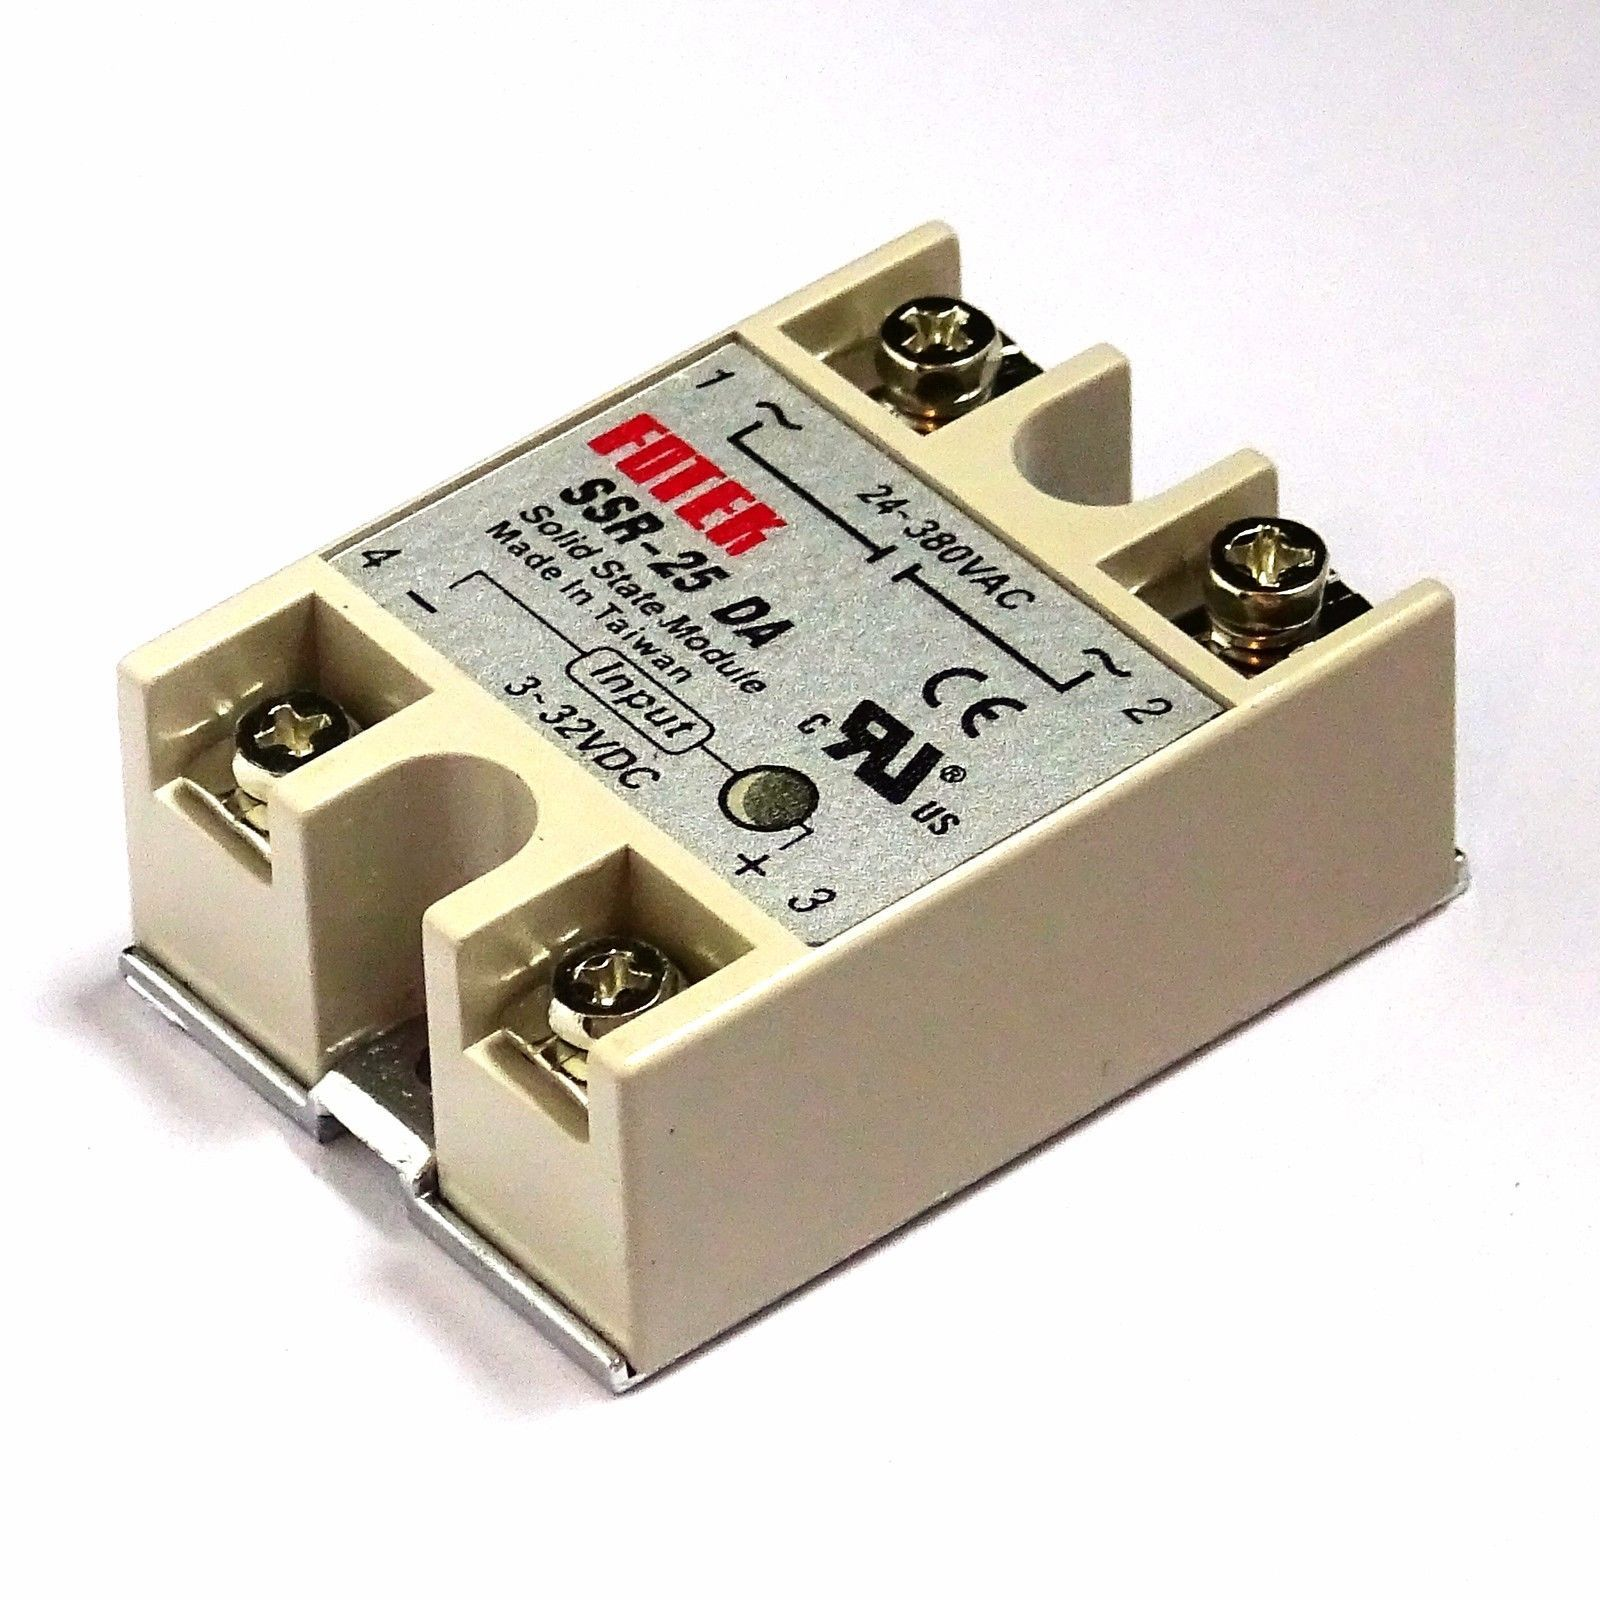 Solid State Relay Module Ssr 25da 25a 250v And 50 Similar Items Celduc 3 32v Dc Input 24 380vac Out Uk